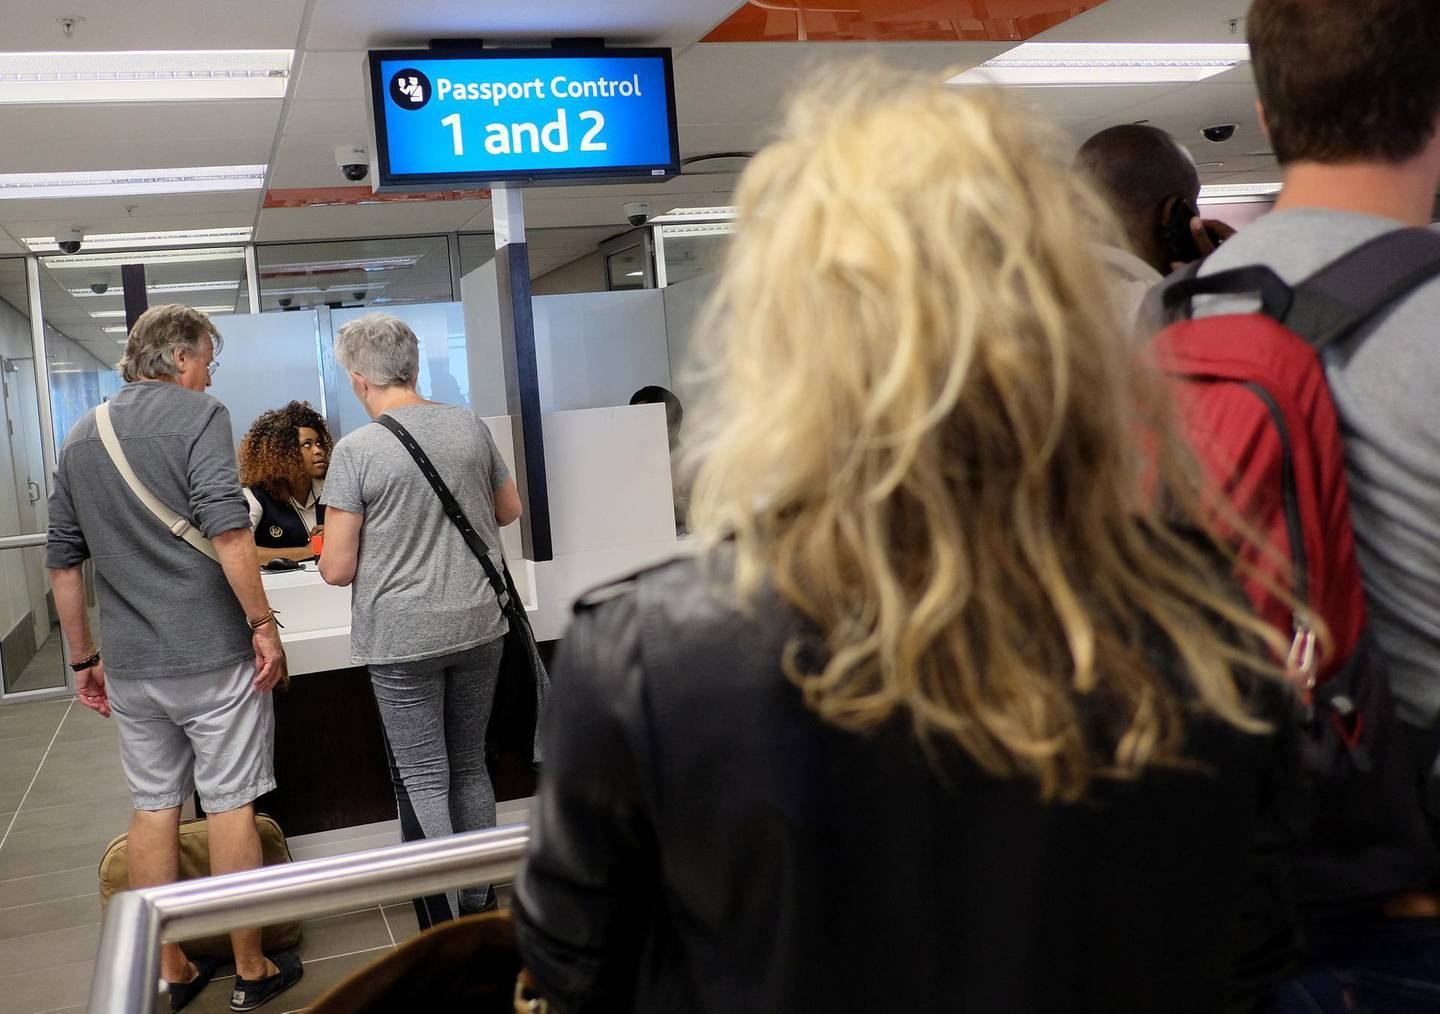 Passengers wait for passport control at Cape Town International Airport in Cape Town, South Africa, January 12, 2018. Picture taken January 12, 2018. REUTERS/Hannah McKay